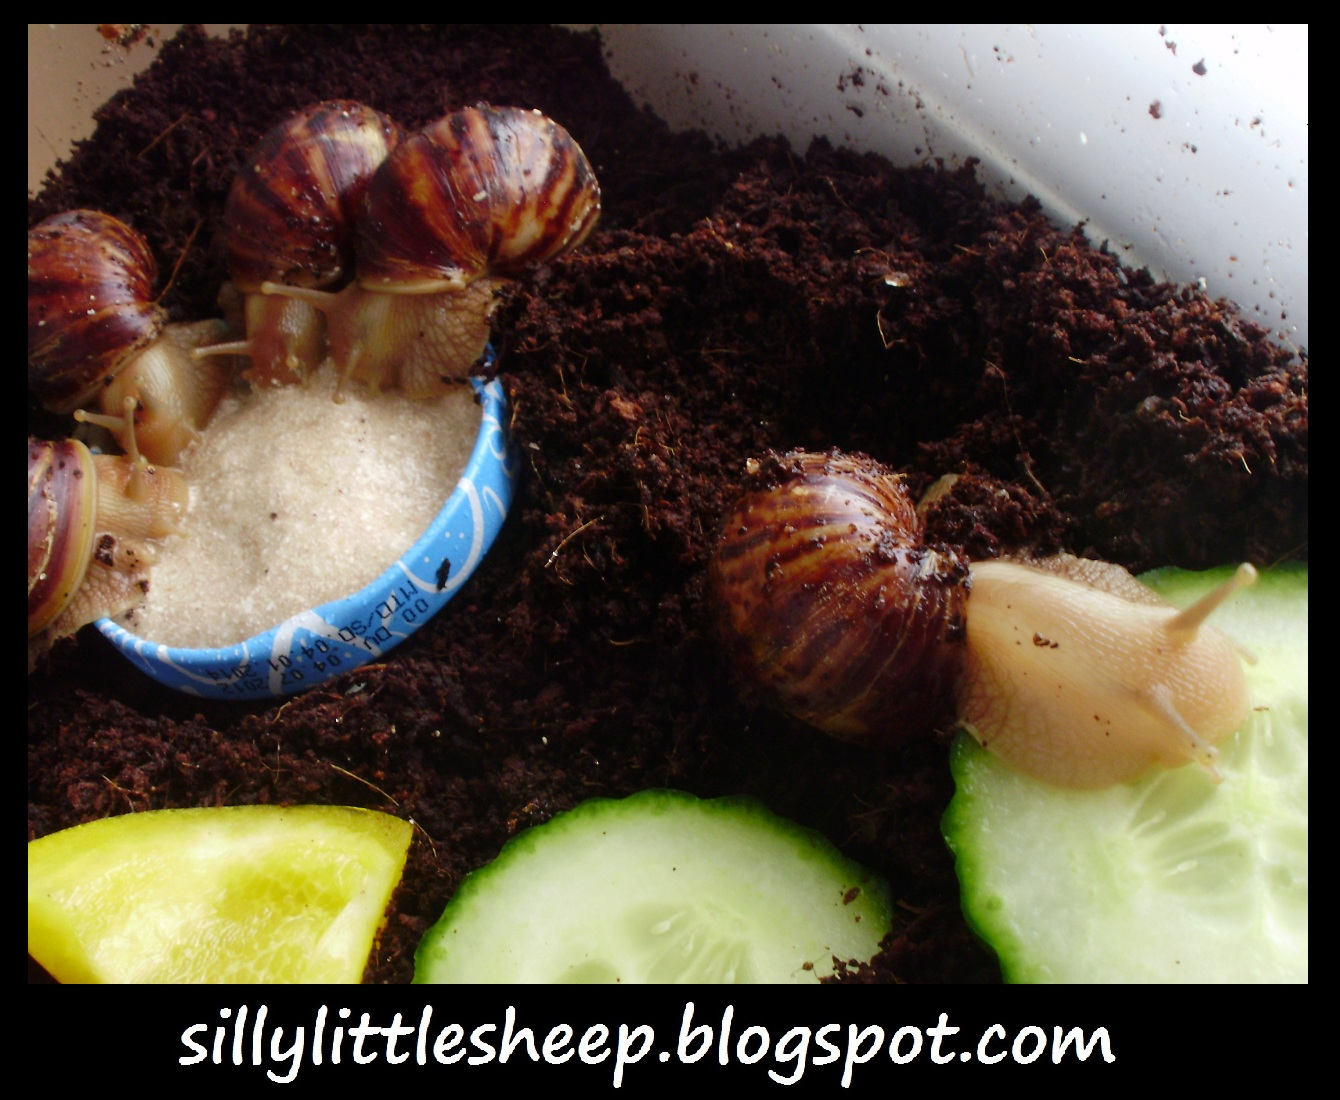 How Long Can Snails Survive Without Food